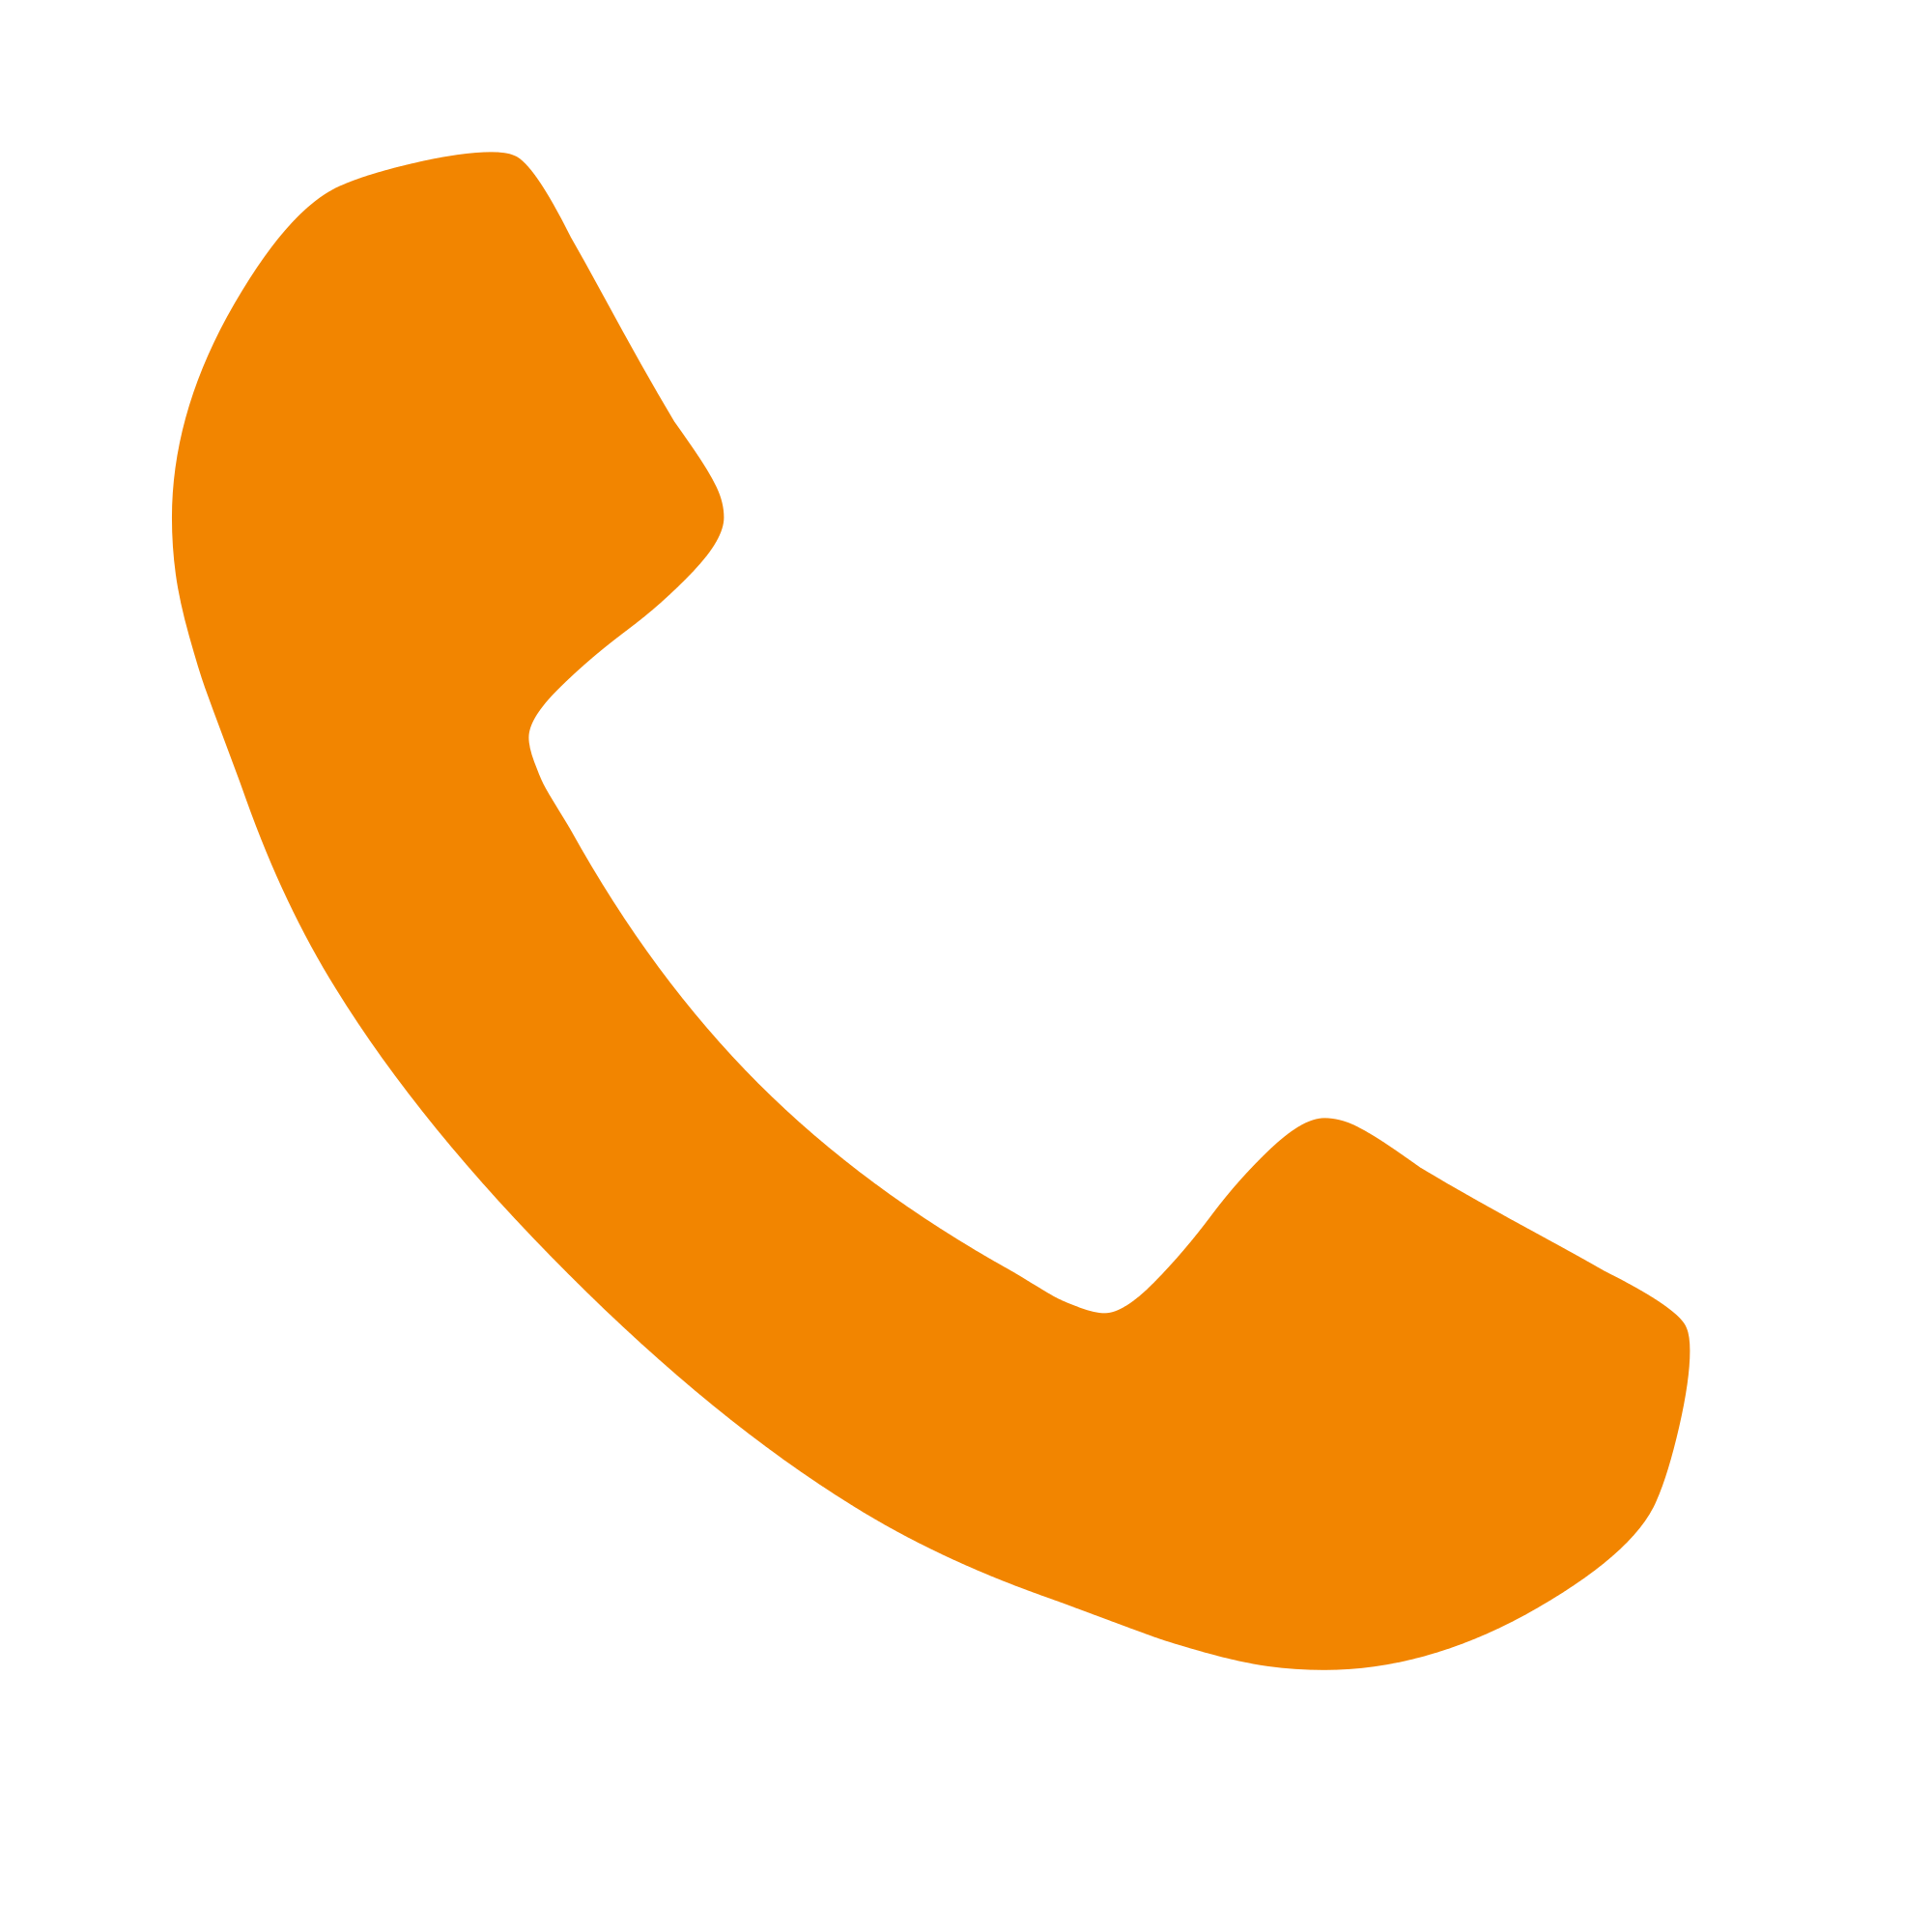 Phone png. Images free picture download